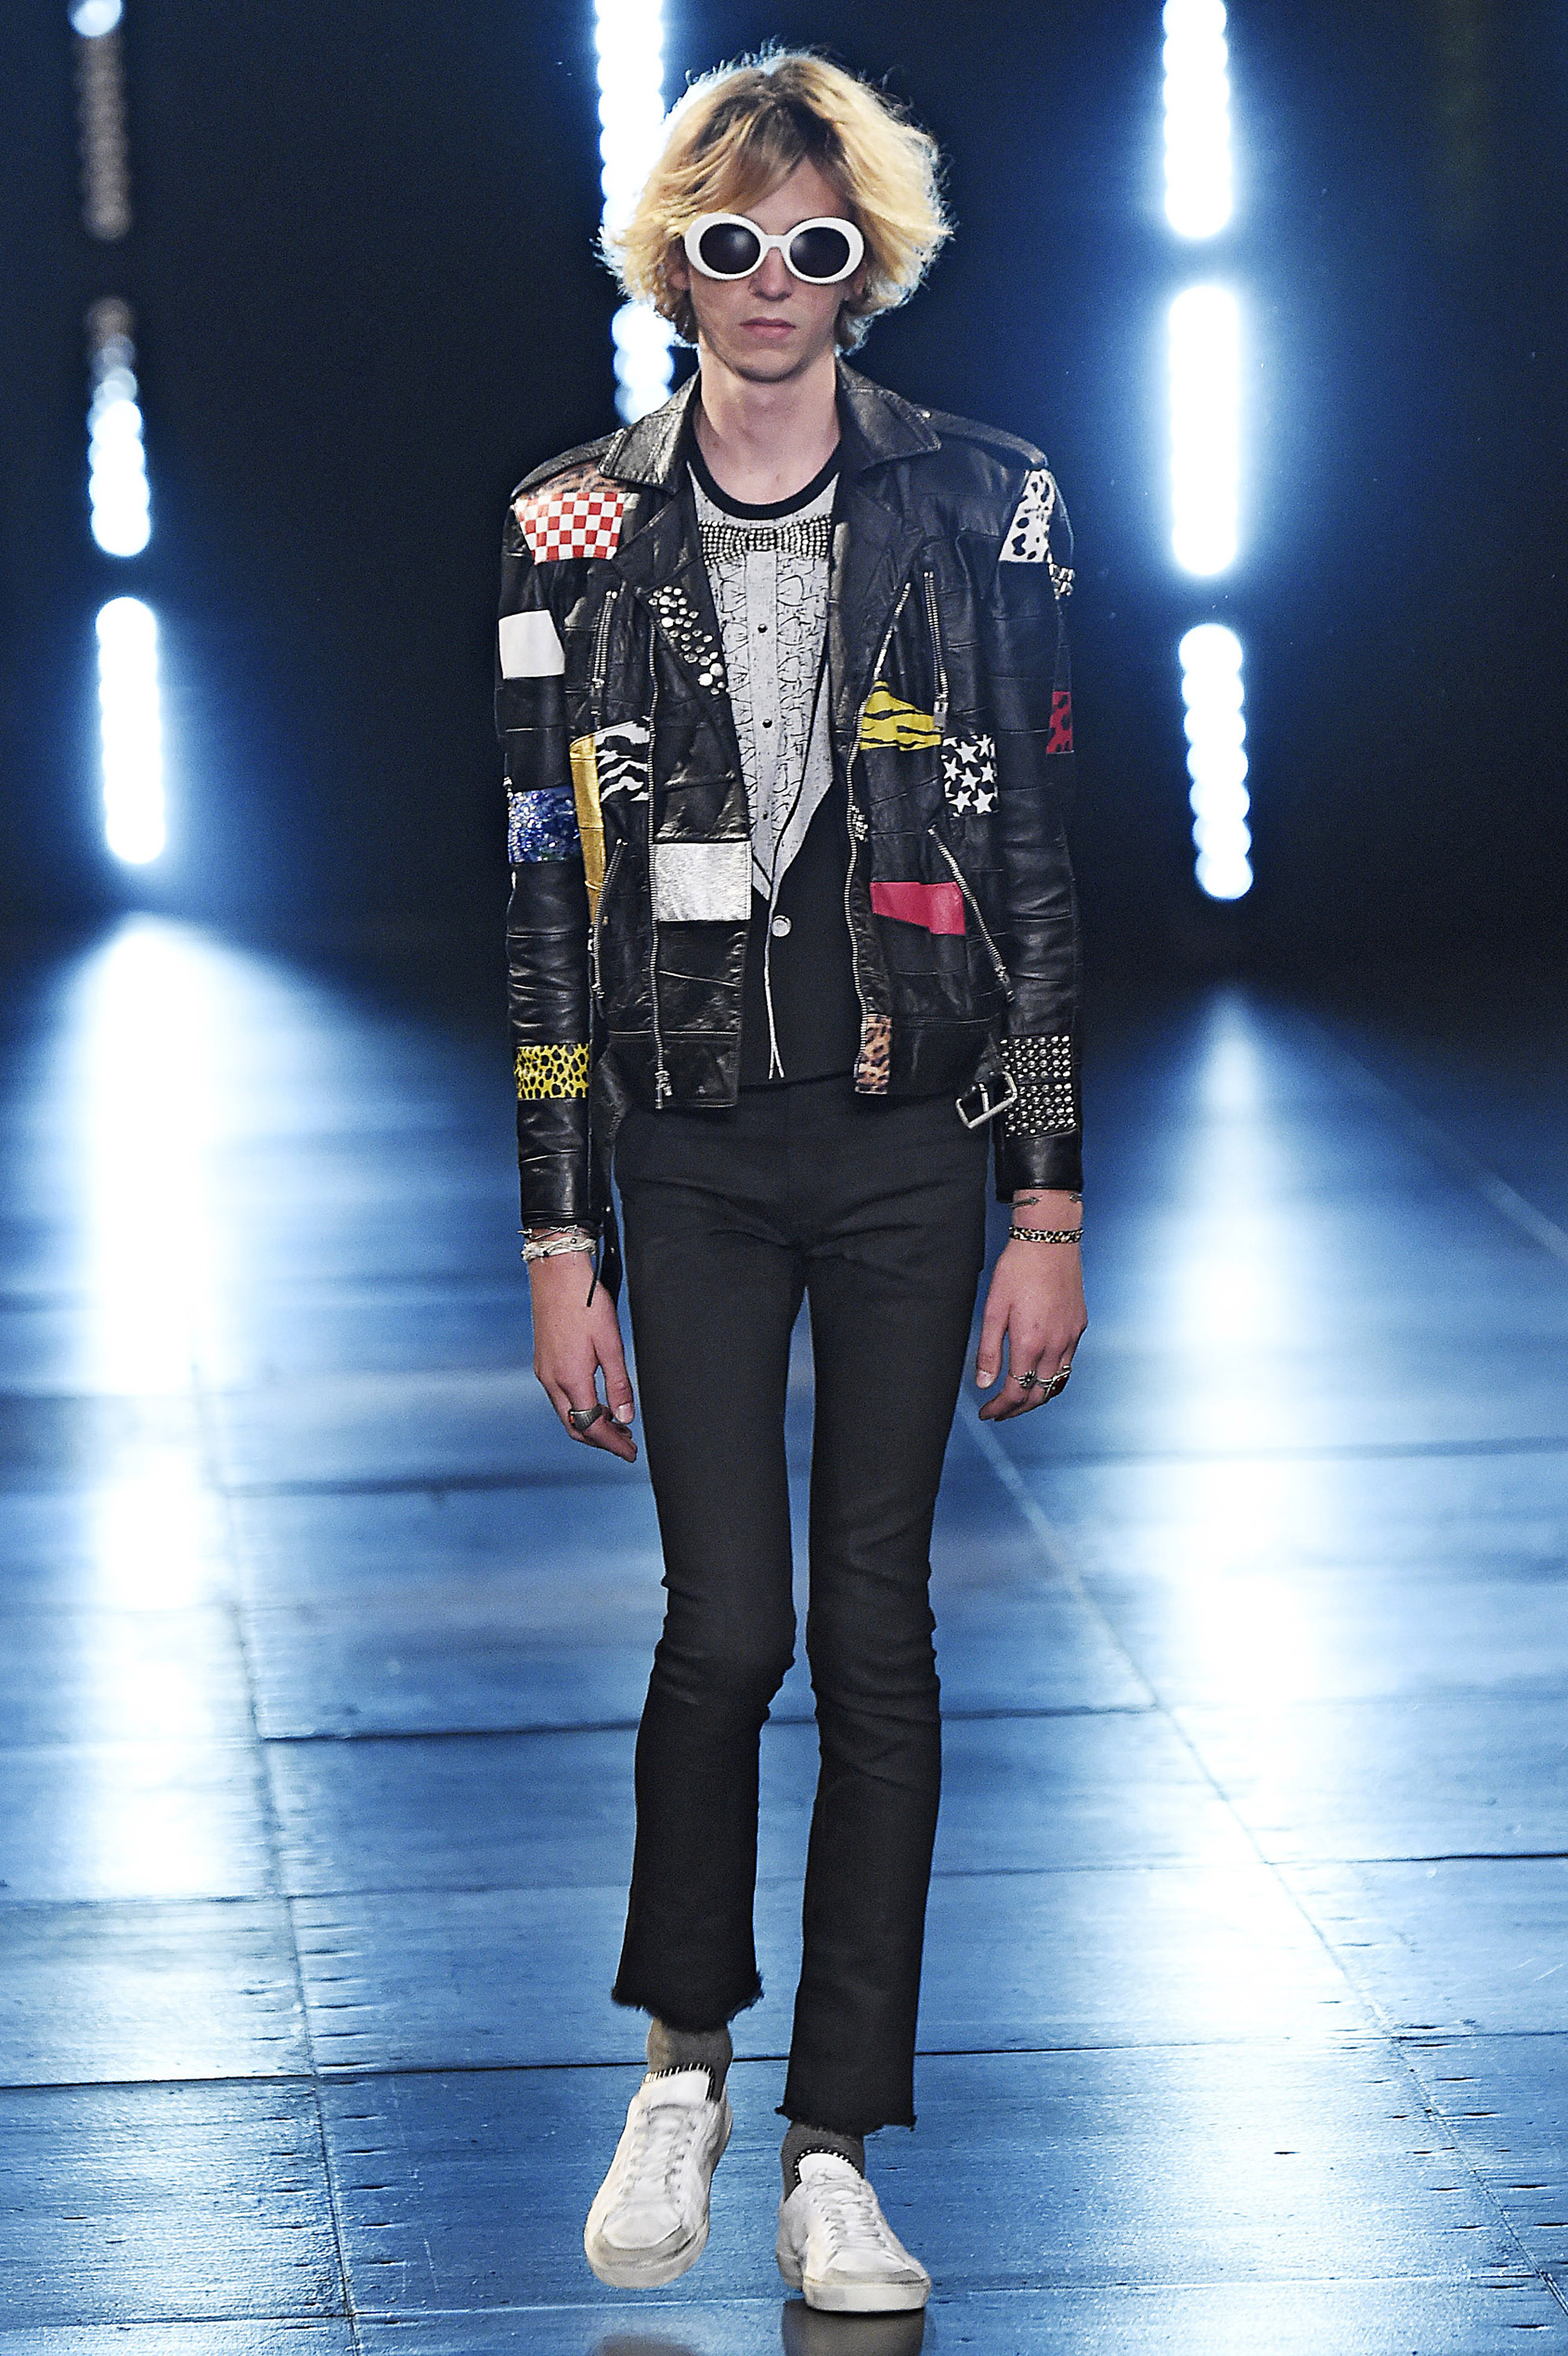 <p>Surf culture met Hedi Slimane's disorderly strain of rock 'n' roll (with a nod to Kurt Cobain) in Saint Laurent's Spring 2016 Menswear collection. Slimane's muse, musician Julia Cumming, took to the runway, as did Dylan Brosnan (son of actor Pierce Brosnan) and Charlie Oldman (son of Gary Oldman). Meanwhile, Jane Birkin, Azzedine Alaïa, Betty Catroux and Salma Hayak Pinault watched from the front row. We're just hoping chivalry lives on with the Saint Laurent man, because we want to borrow his jackets.</p><div> </div>